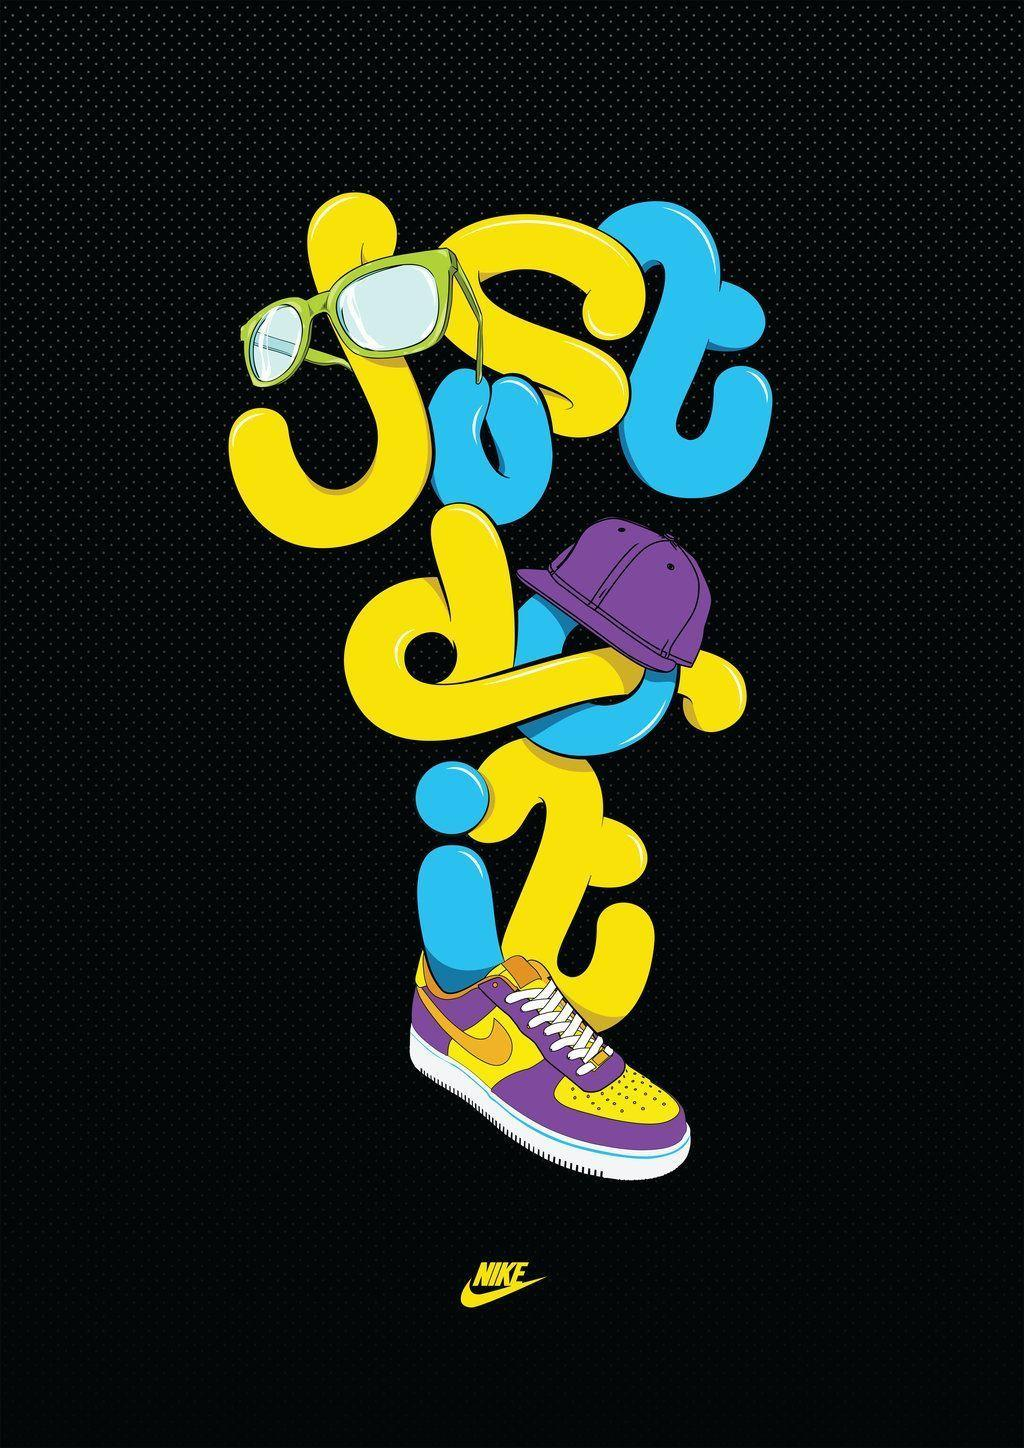 Nike just do it wallpaper colorful